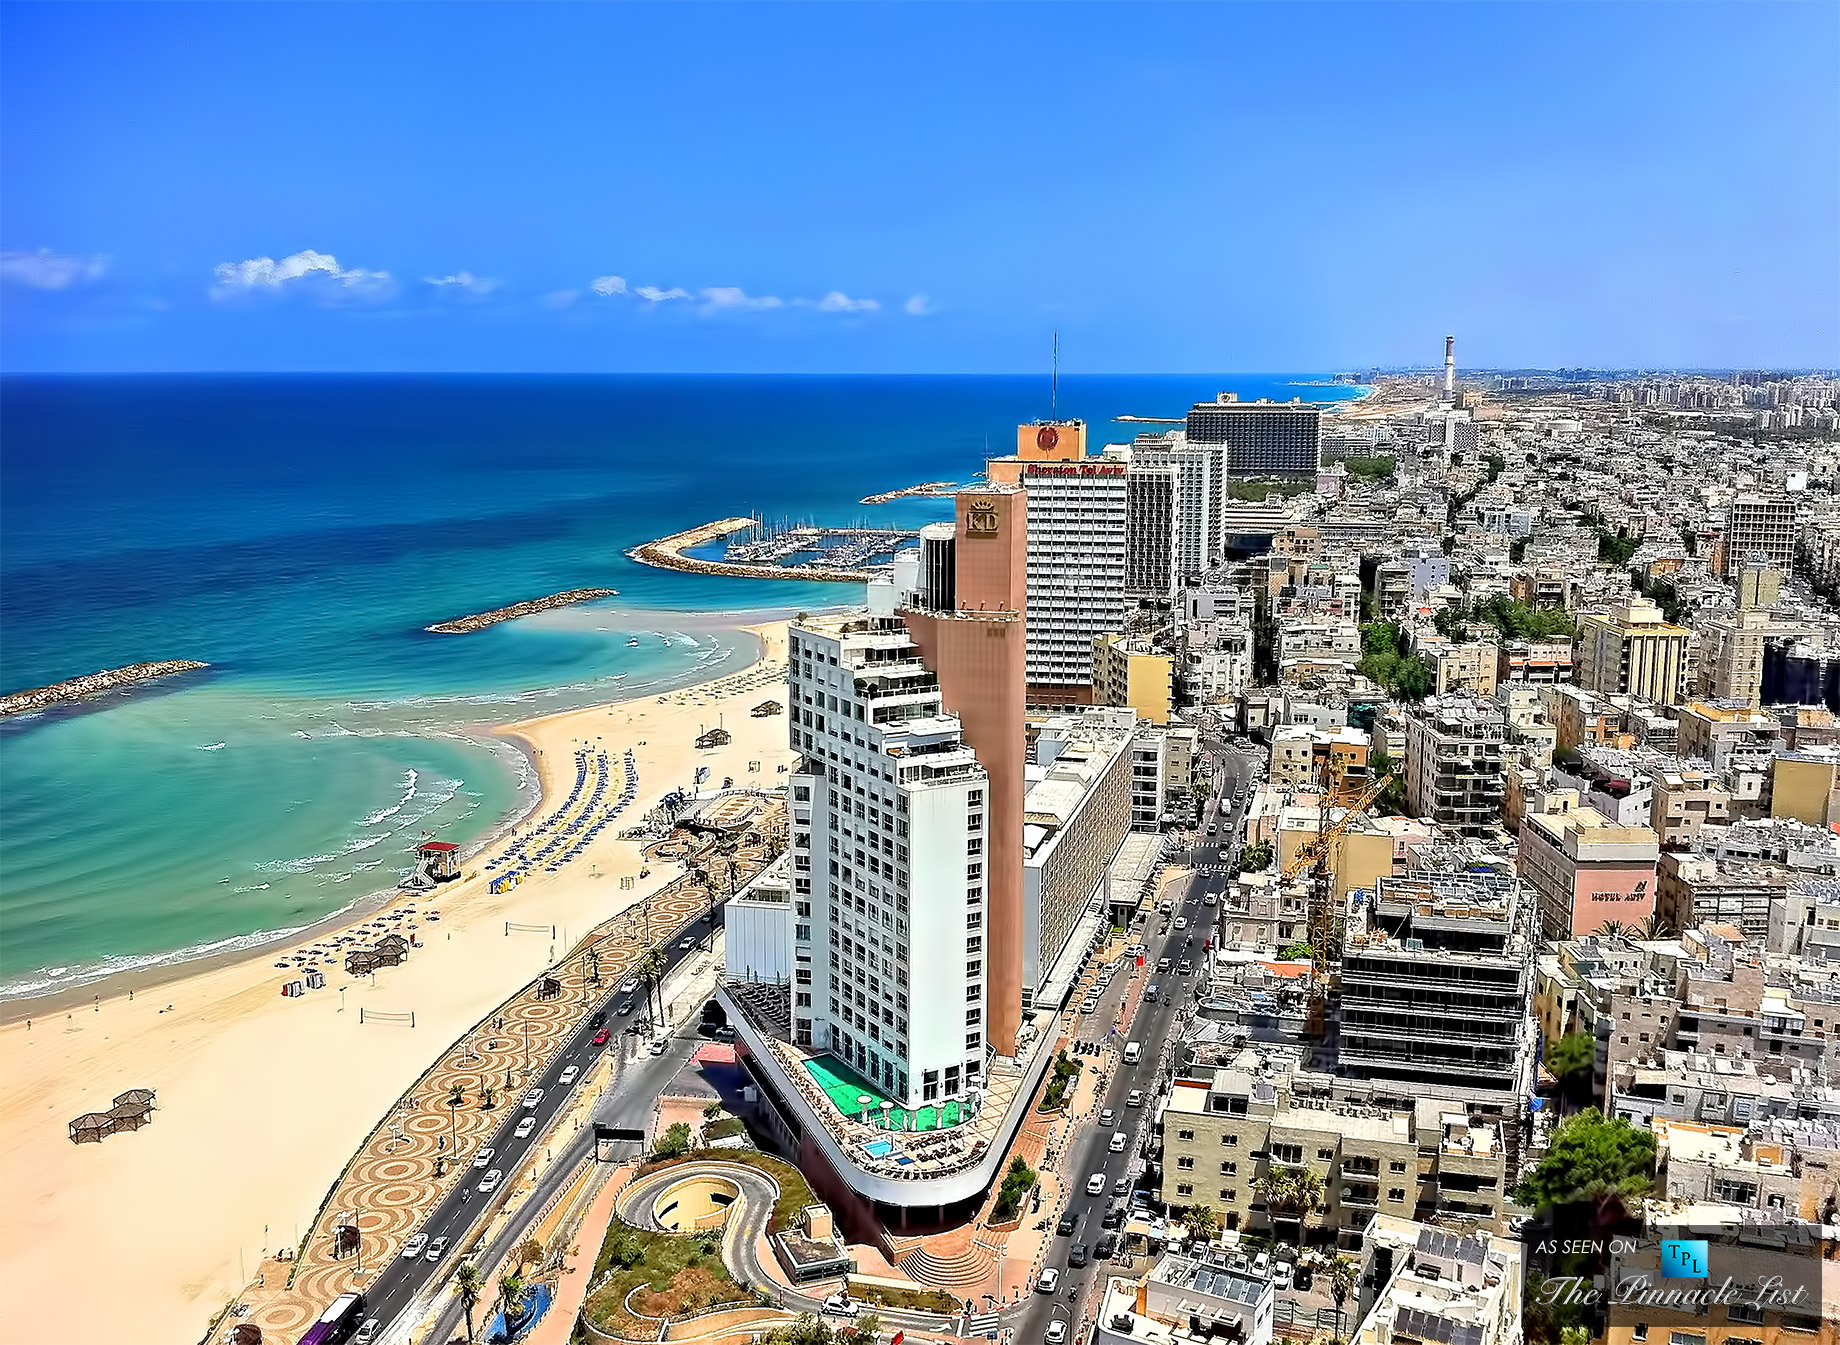 Israel beaches